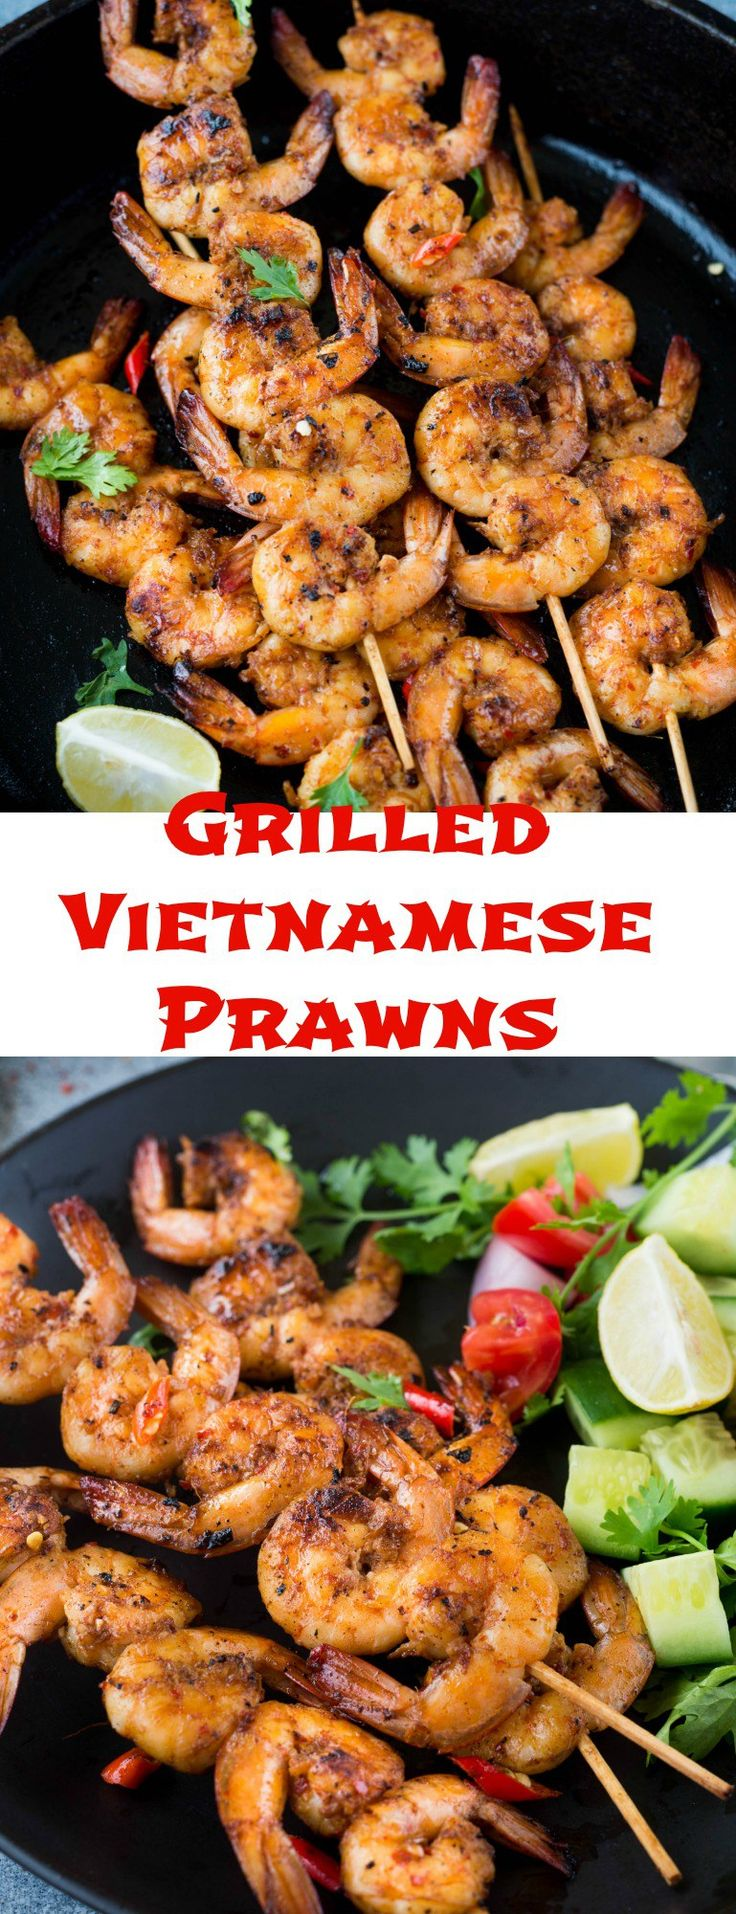 Grilled Vietnamese Prawns/Shrimps are prawn marinated in lemongrass ,fish sauce ,spices and grilled till golden brown. Perfect for summer barbecues.